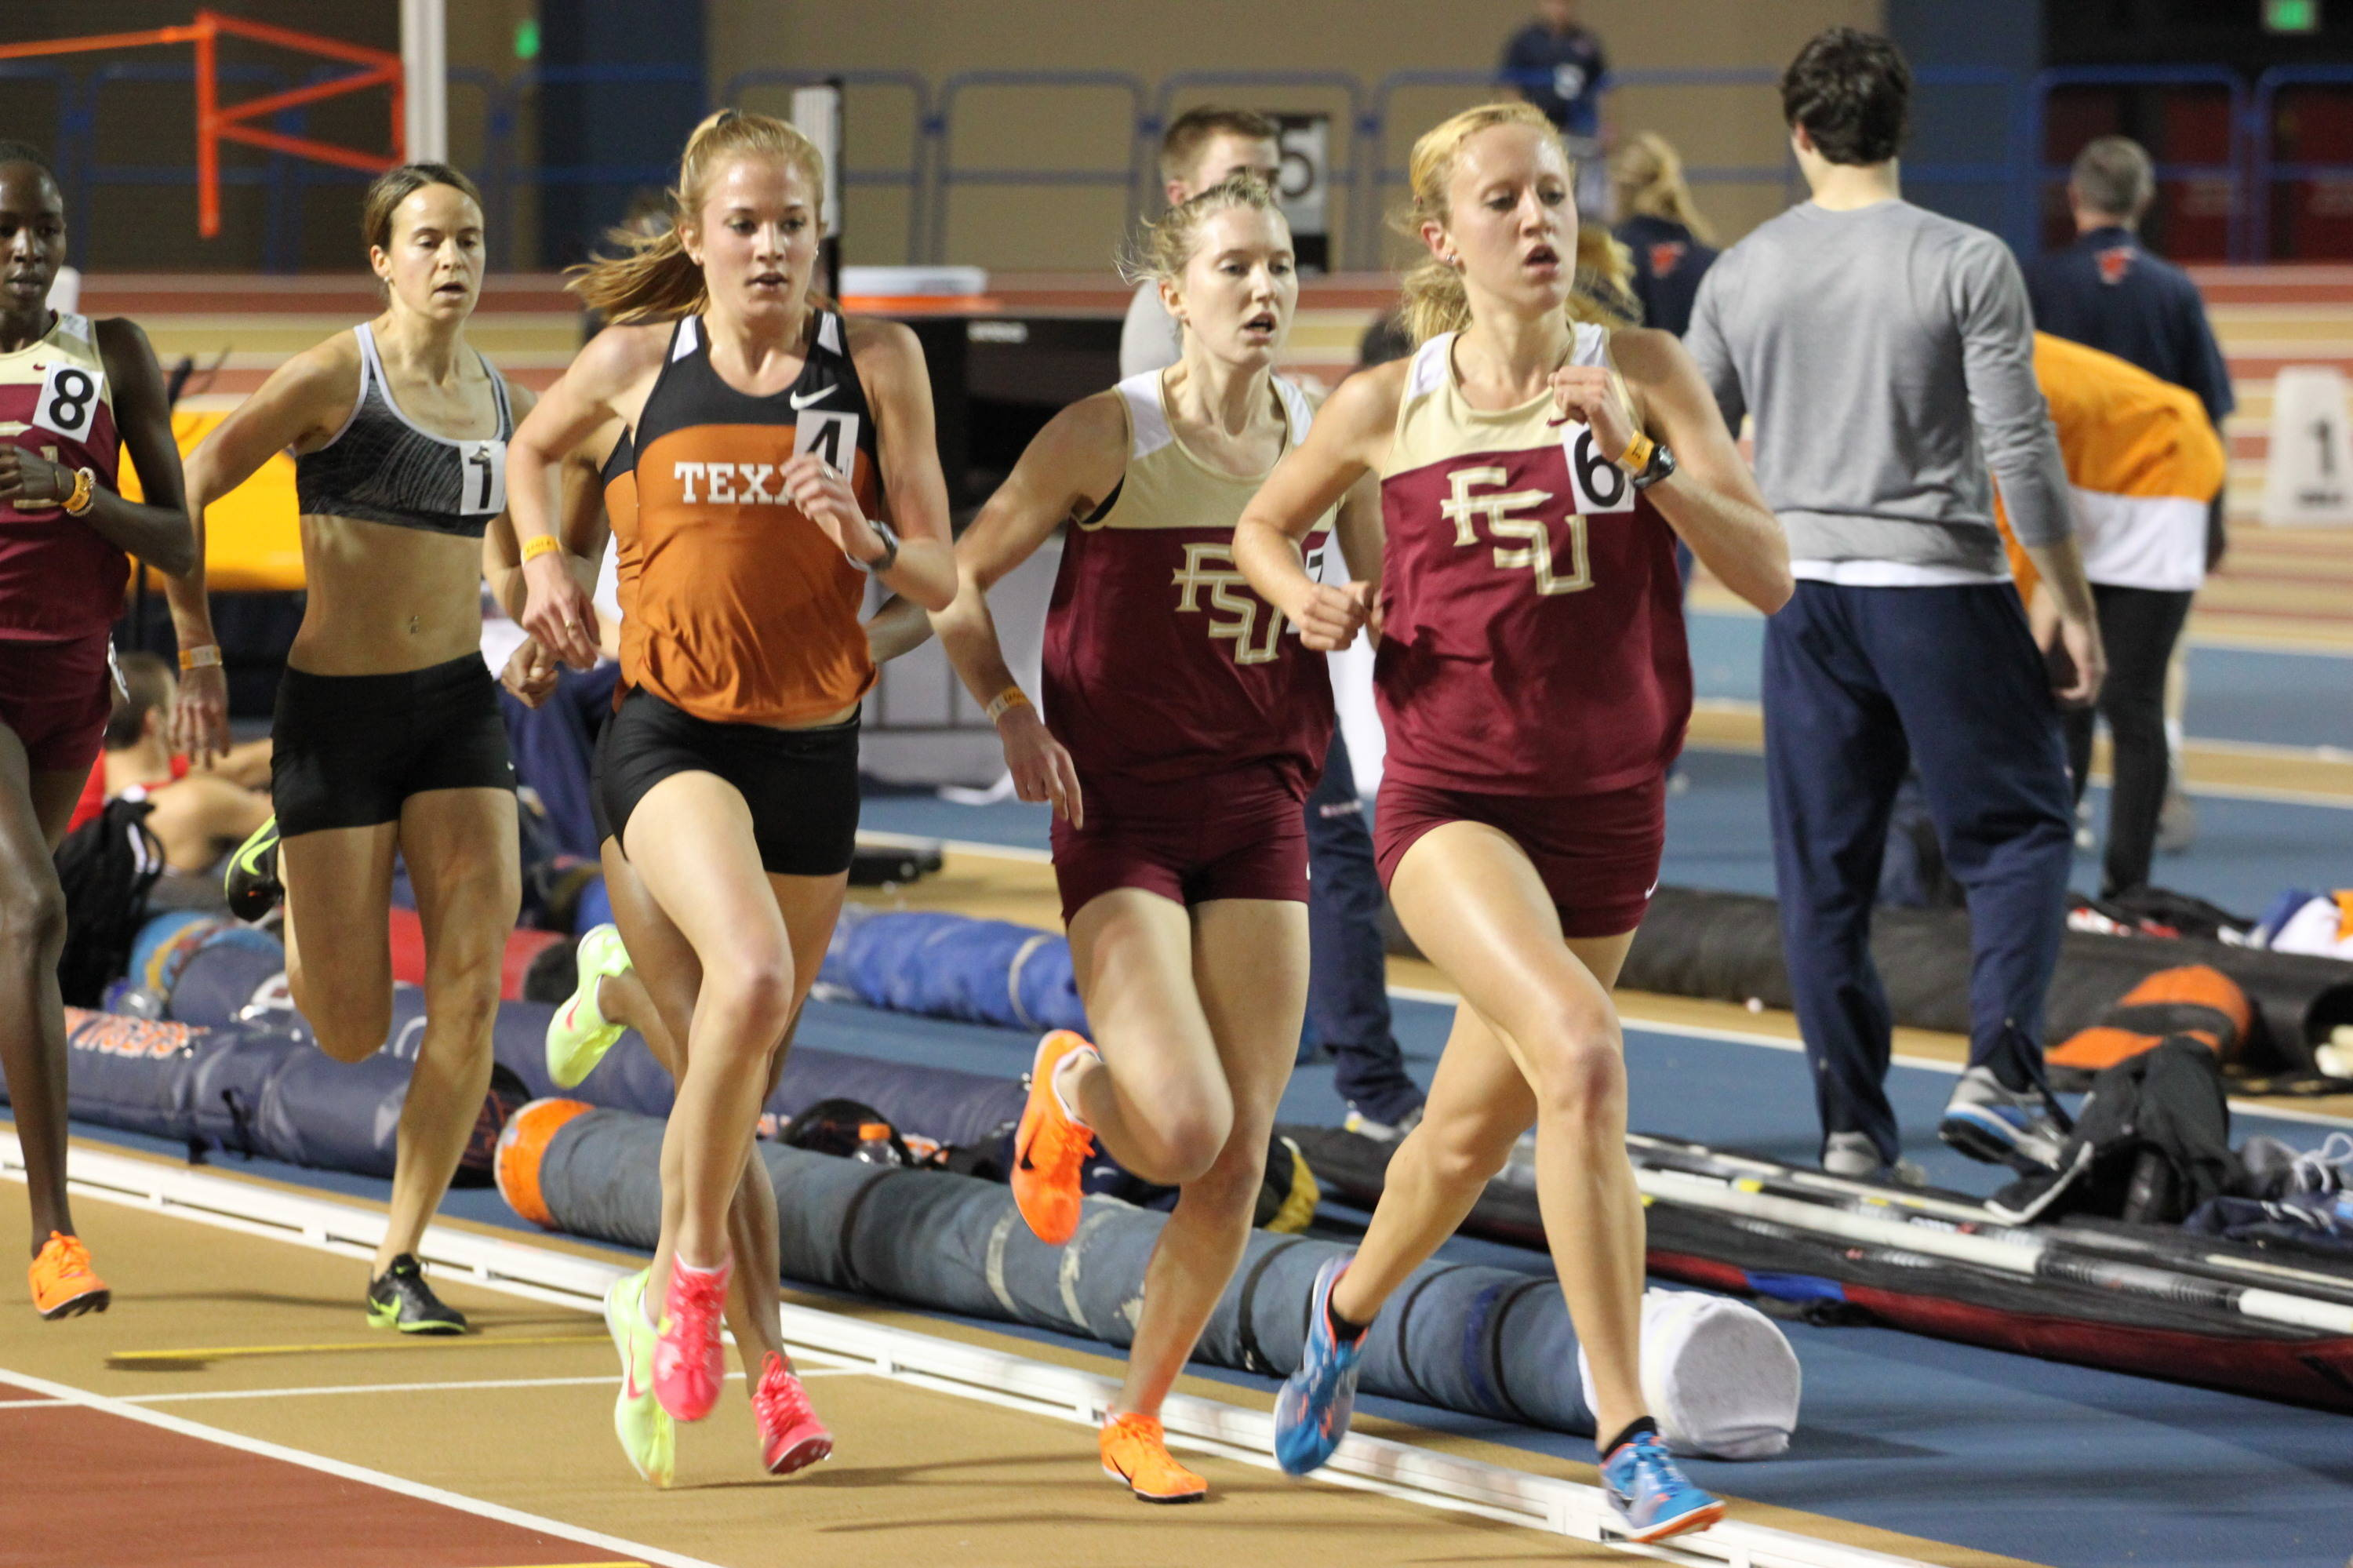 Amanda Winslow and Hannah Brooks lead the way in the 3000 meters, where the Seminoles went 1-2-3, with Violah Lagat (partially obscured) kicking to a third-place finish.